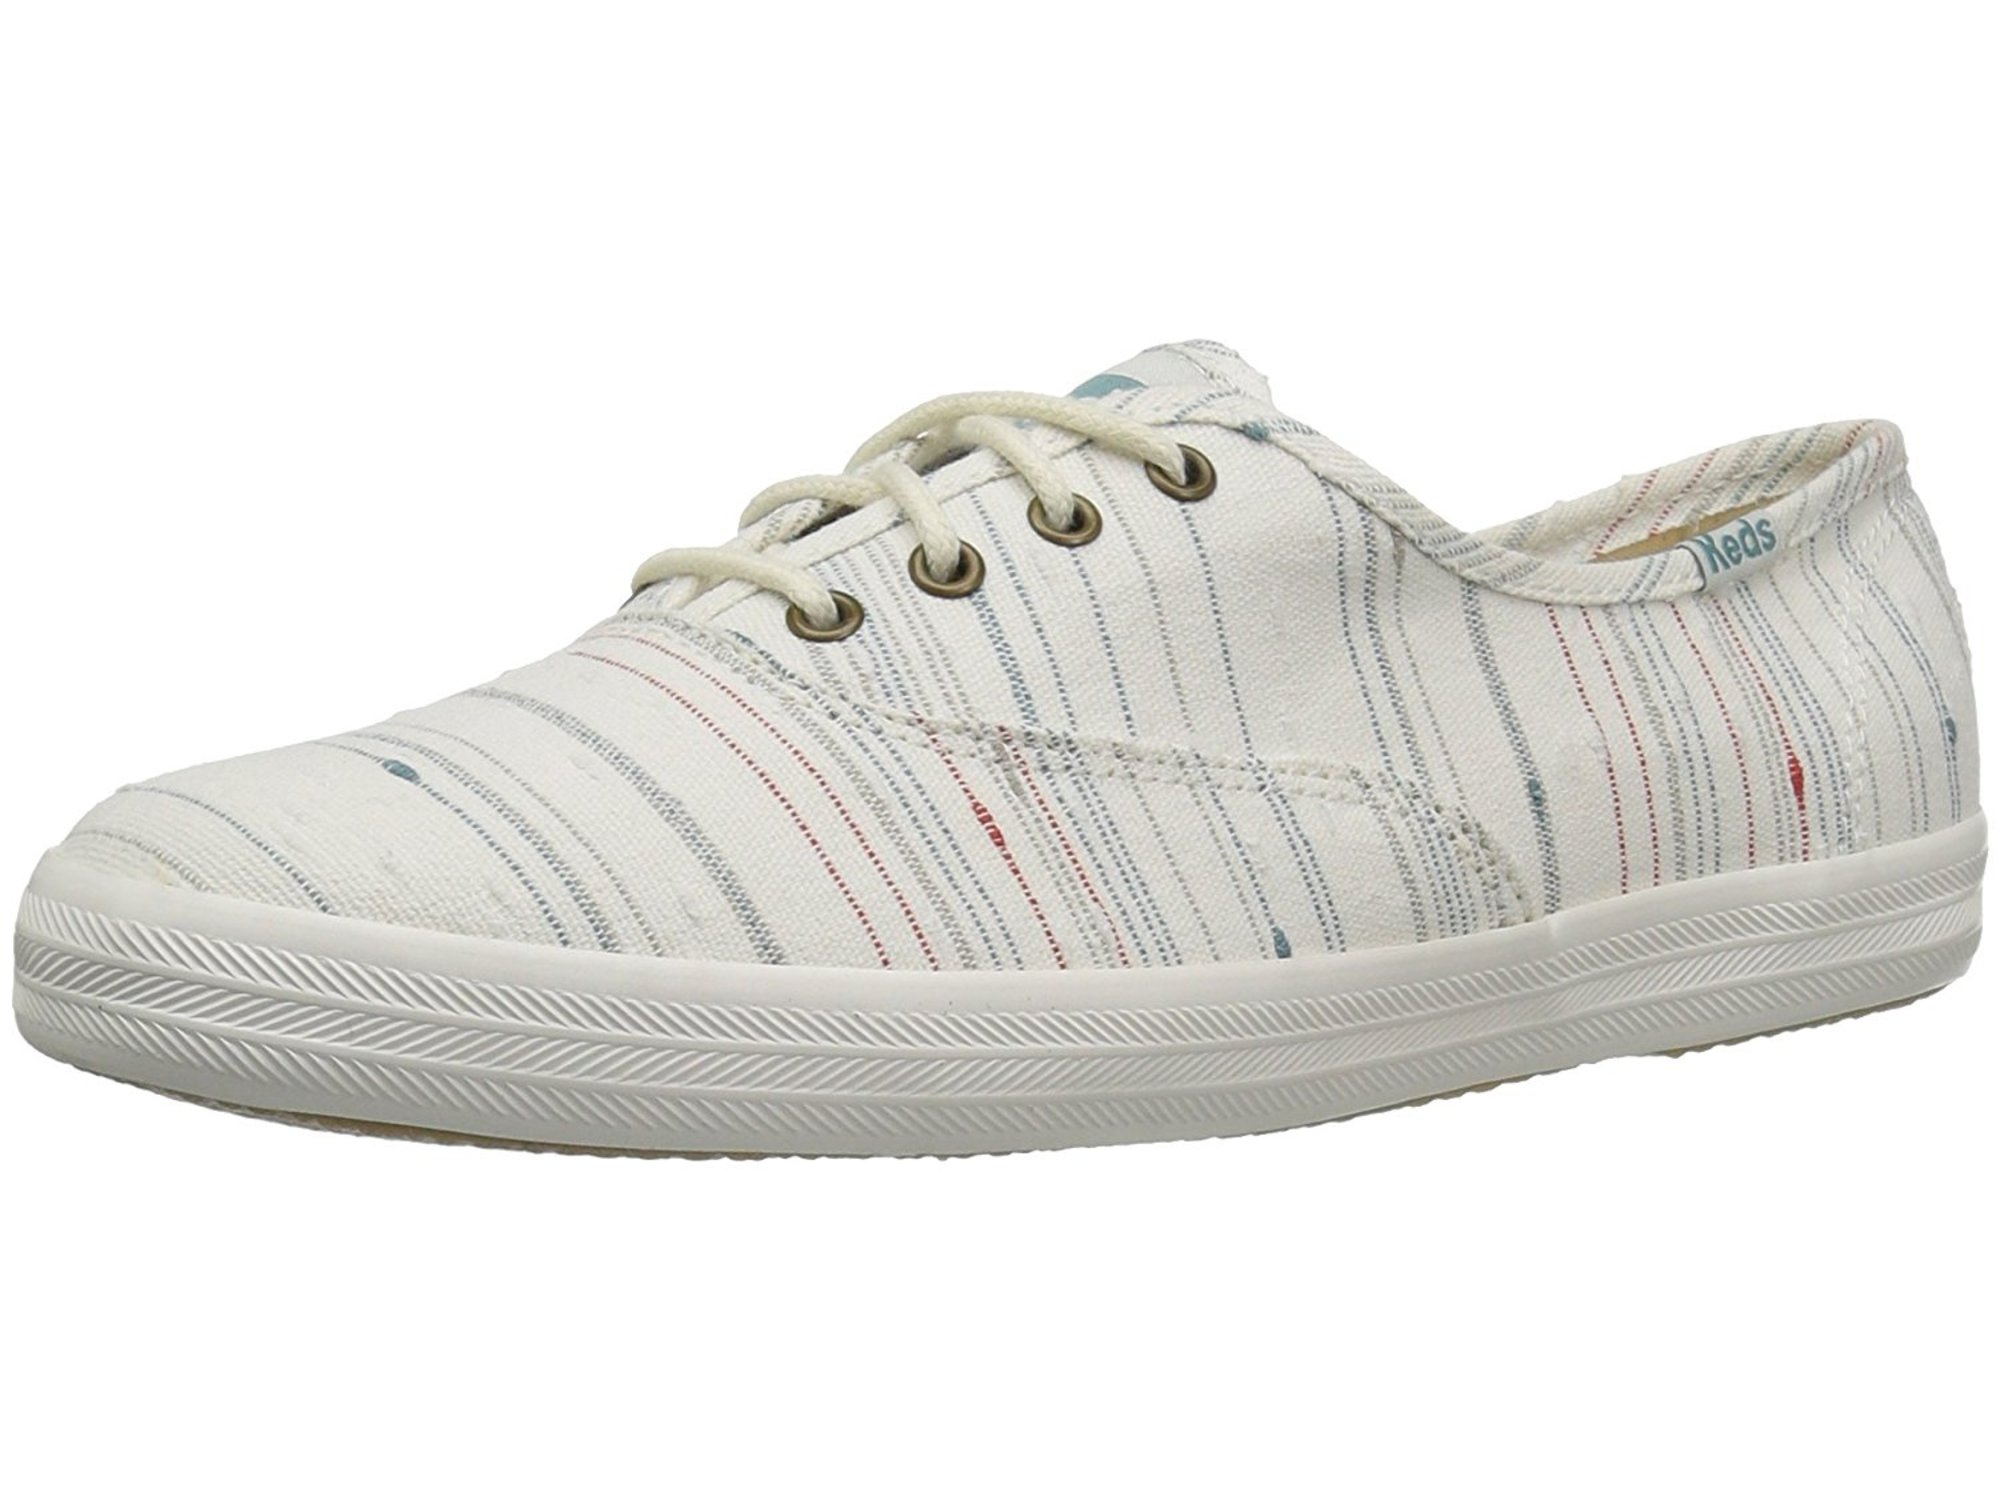 d45334d6b4701 Keds Womens Champion Celestial Canvas Low Top Lace Up Fashion Sneakers